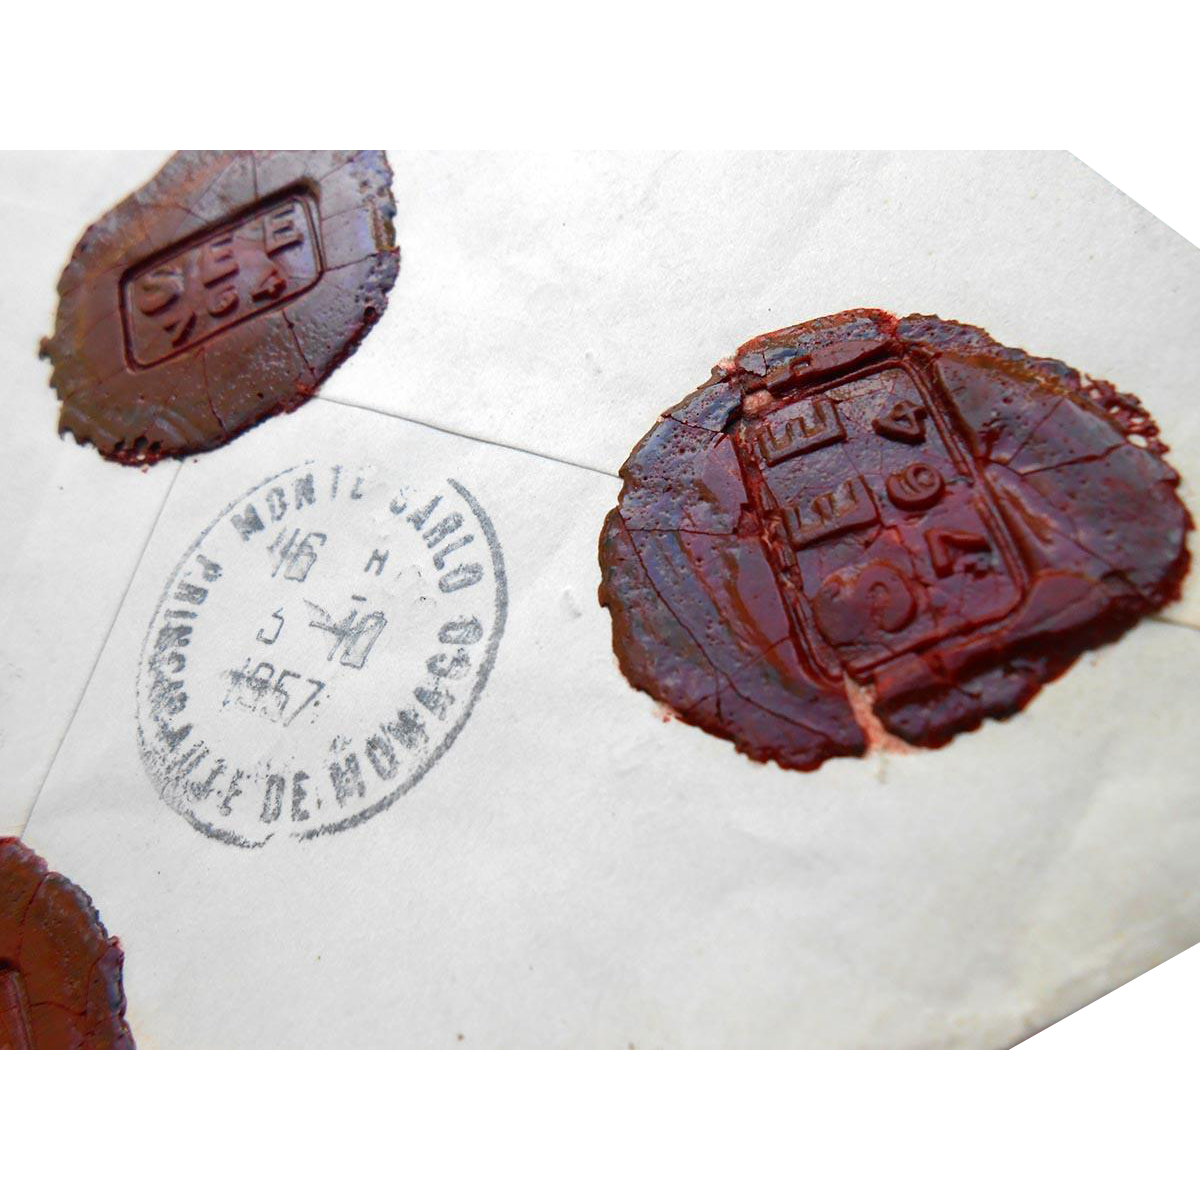 1957 Envelope Marseille to Monaco Franking with Five Wax Seals